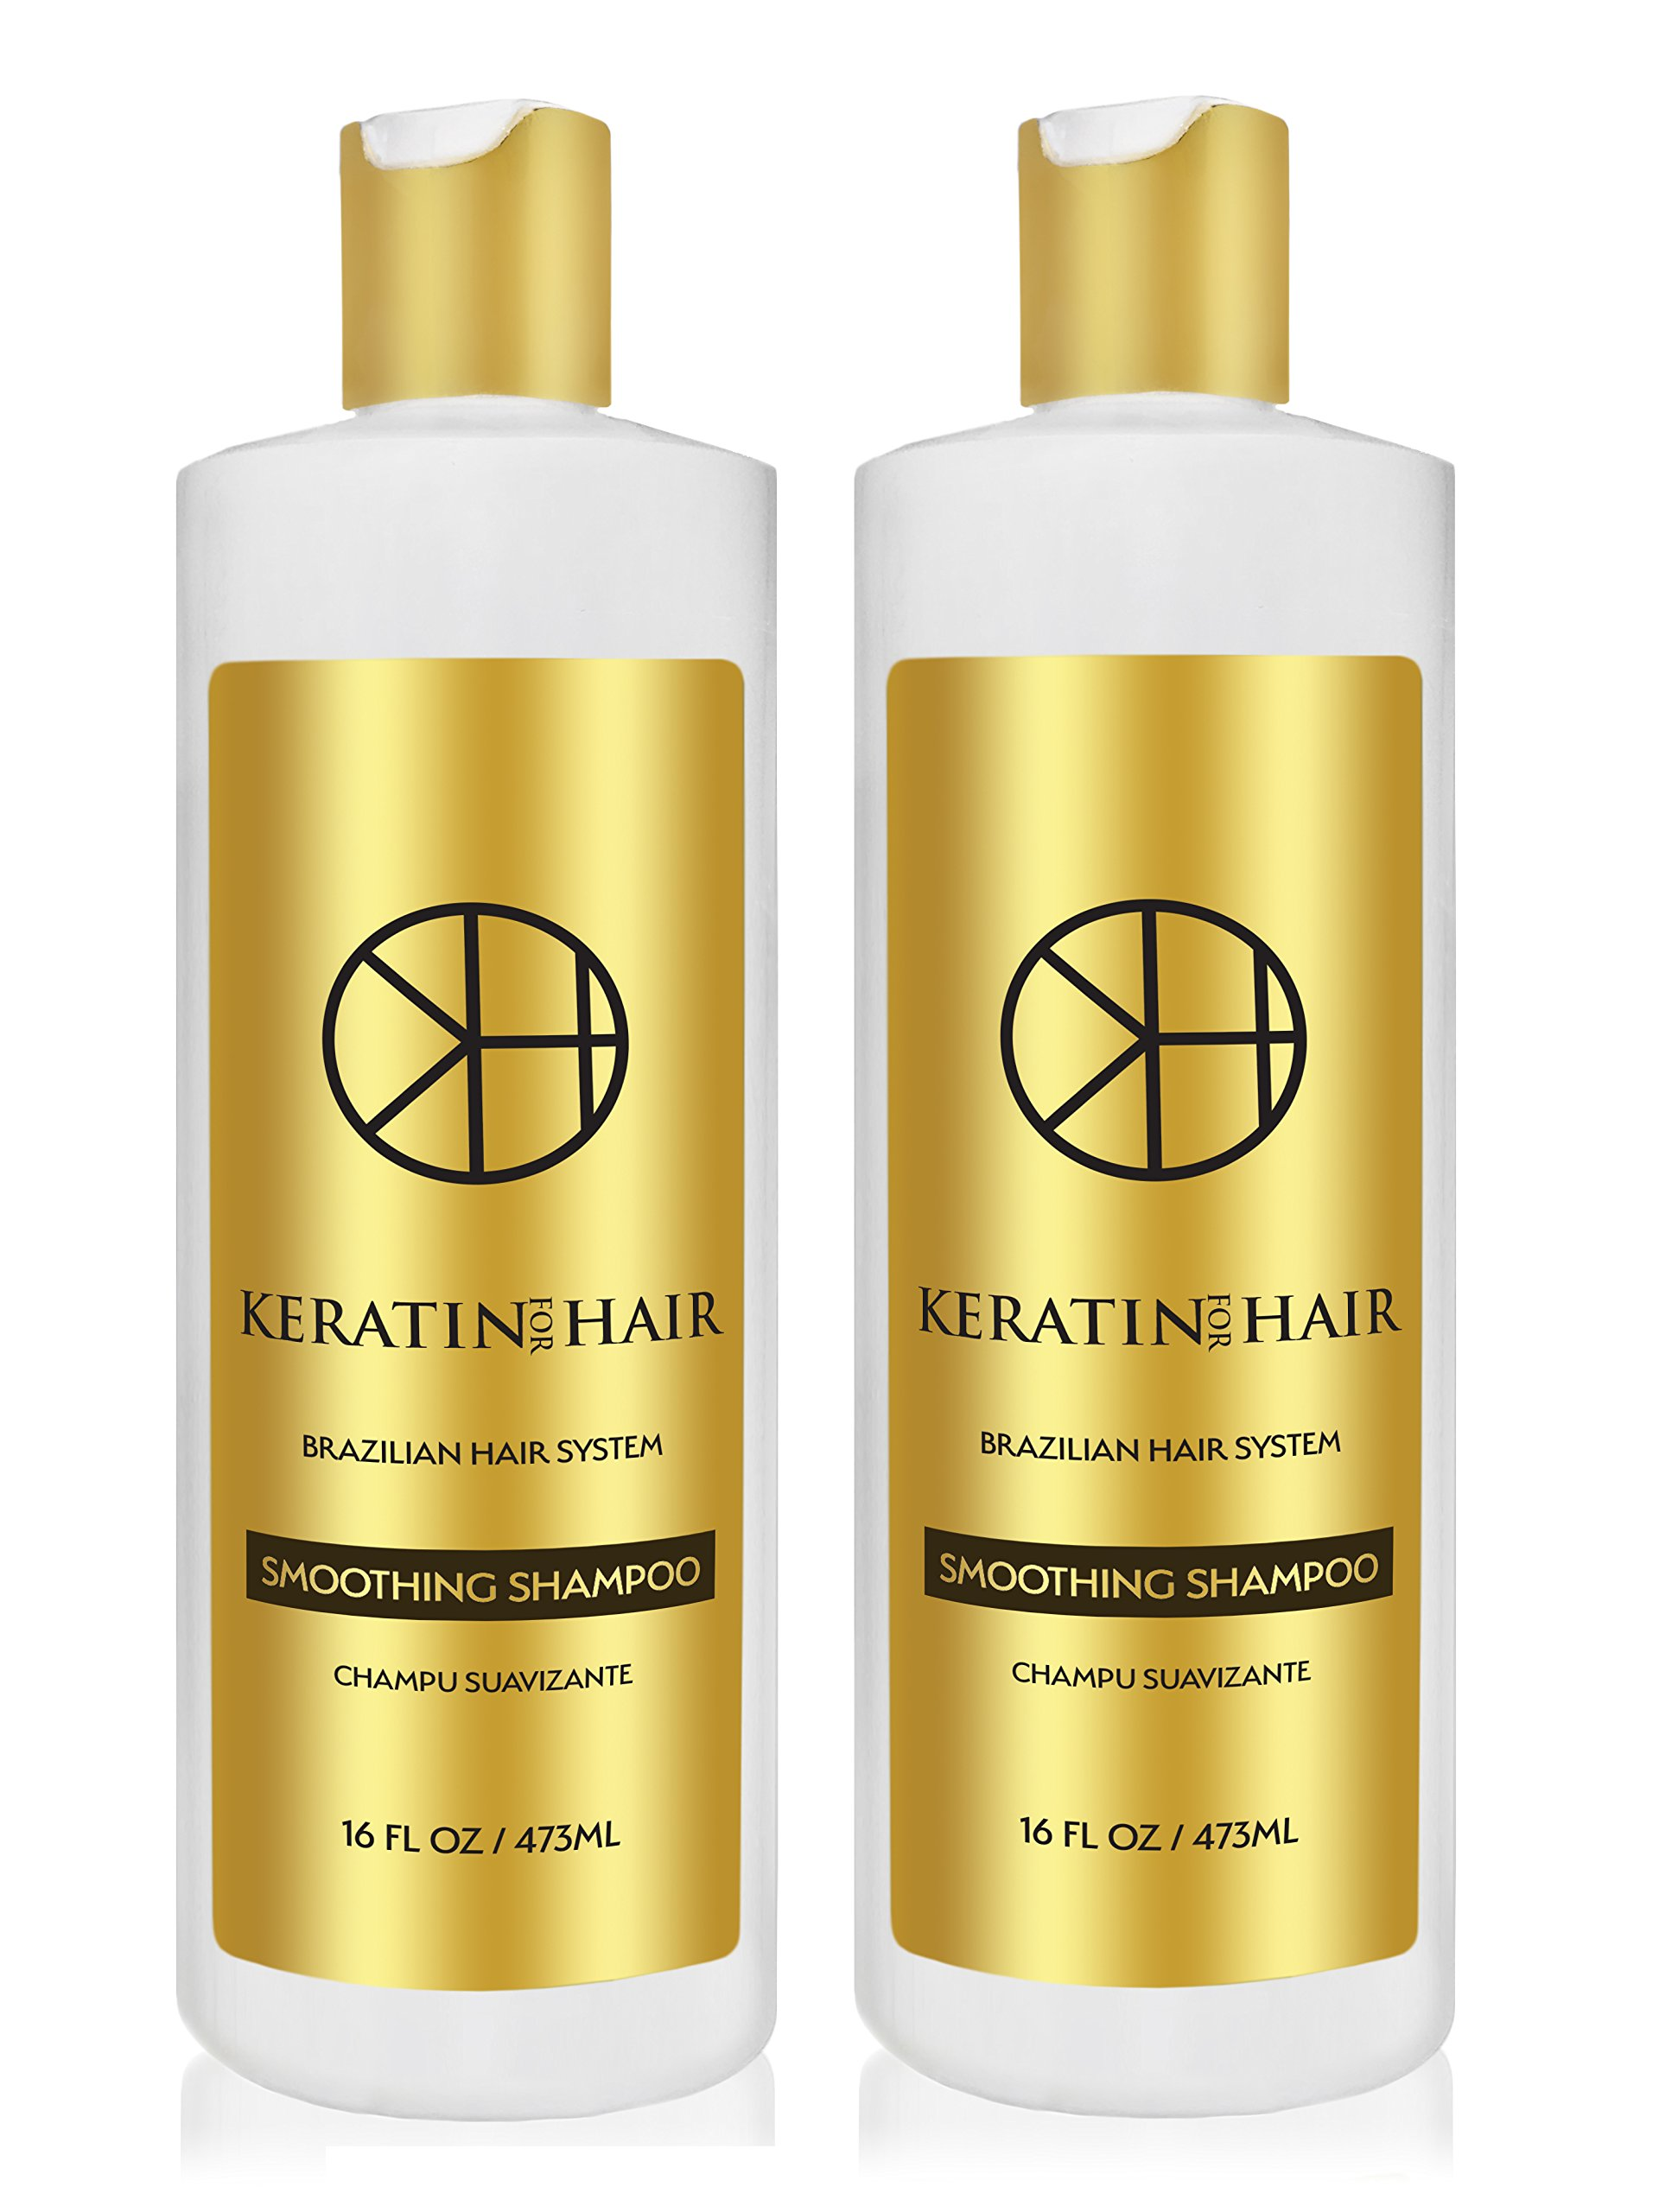 Keratin for Hair Shampoo x 2 with Complex Vitamins Argan Oil proteins collagen 16 Oz Sulfate Free for Hair Moisturizer Regrowth Repair Treatment prevent Hair Loss Thinning Promote Growth Men & Women